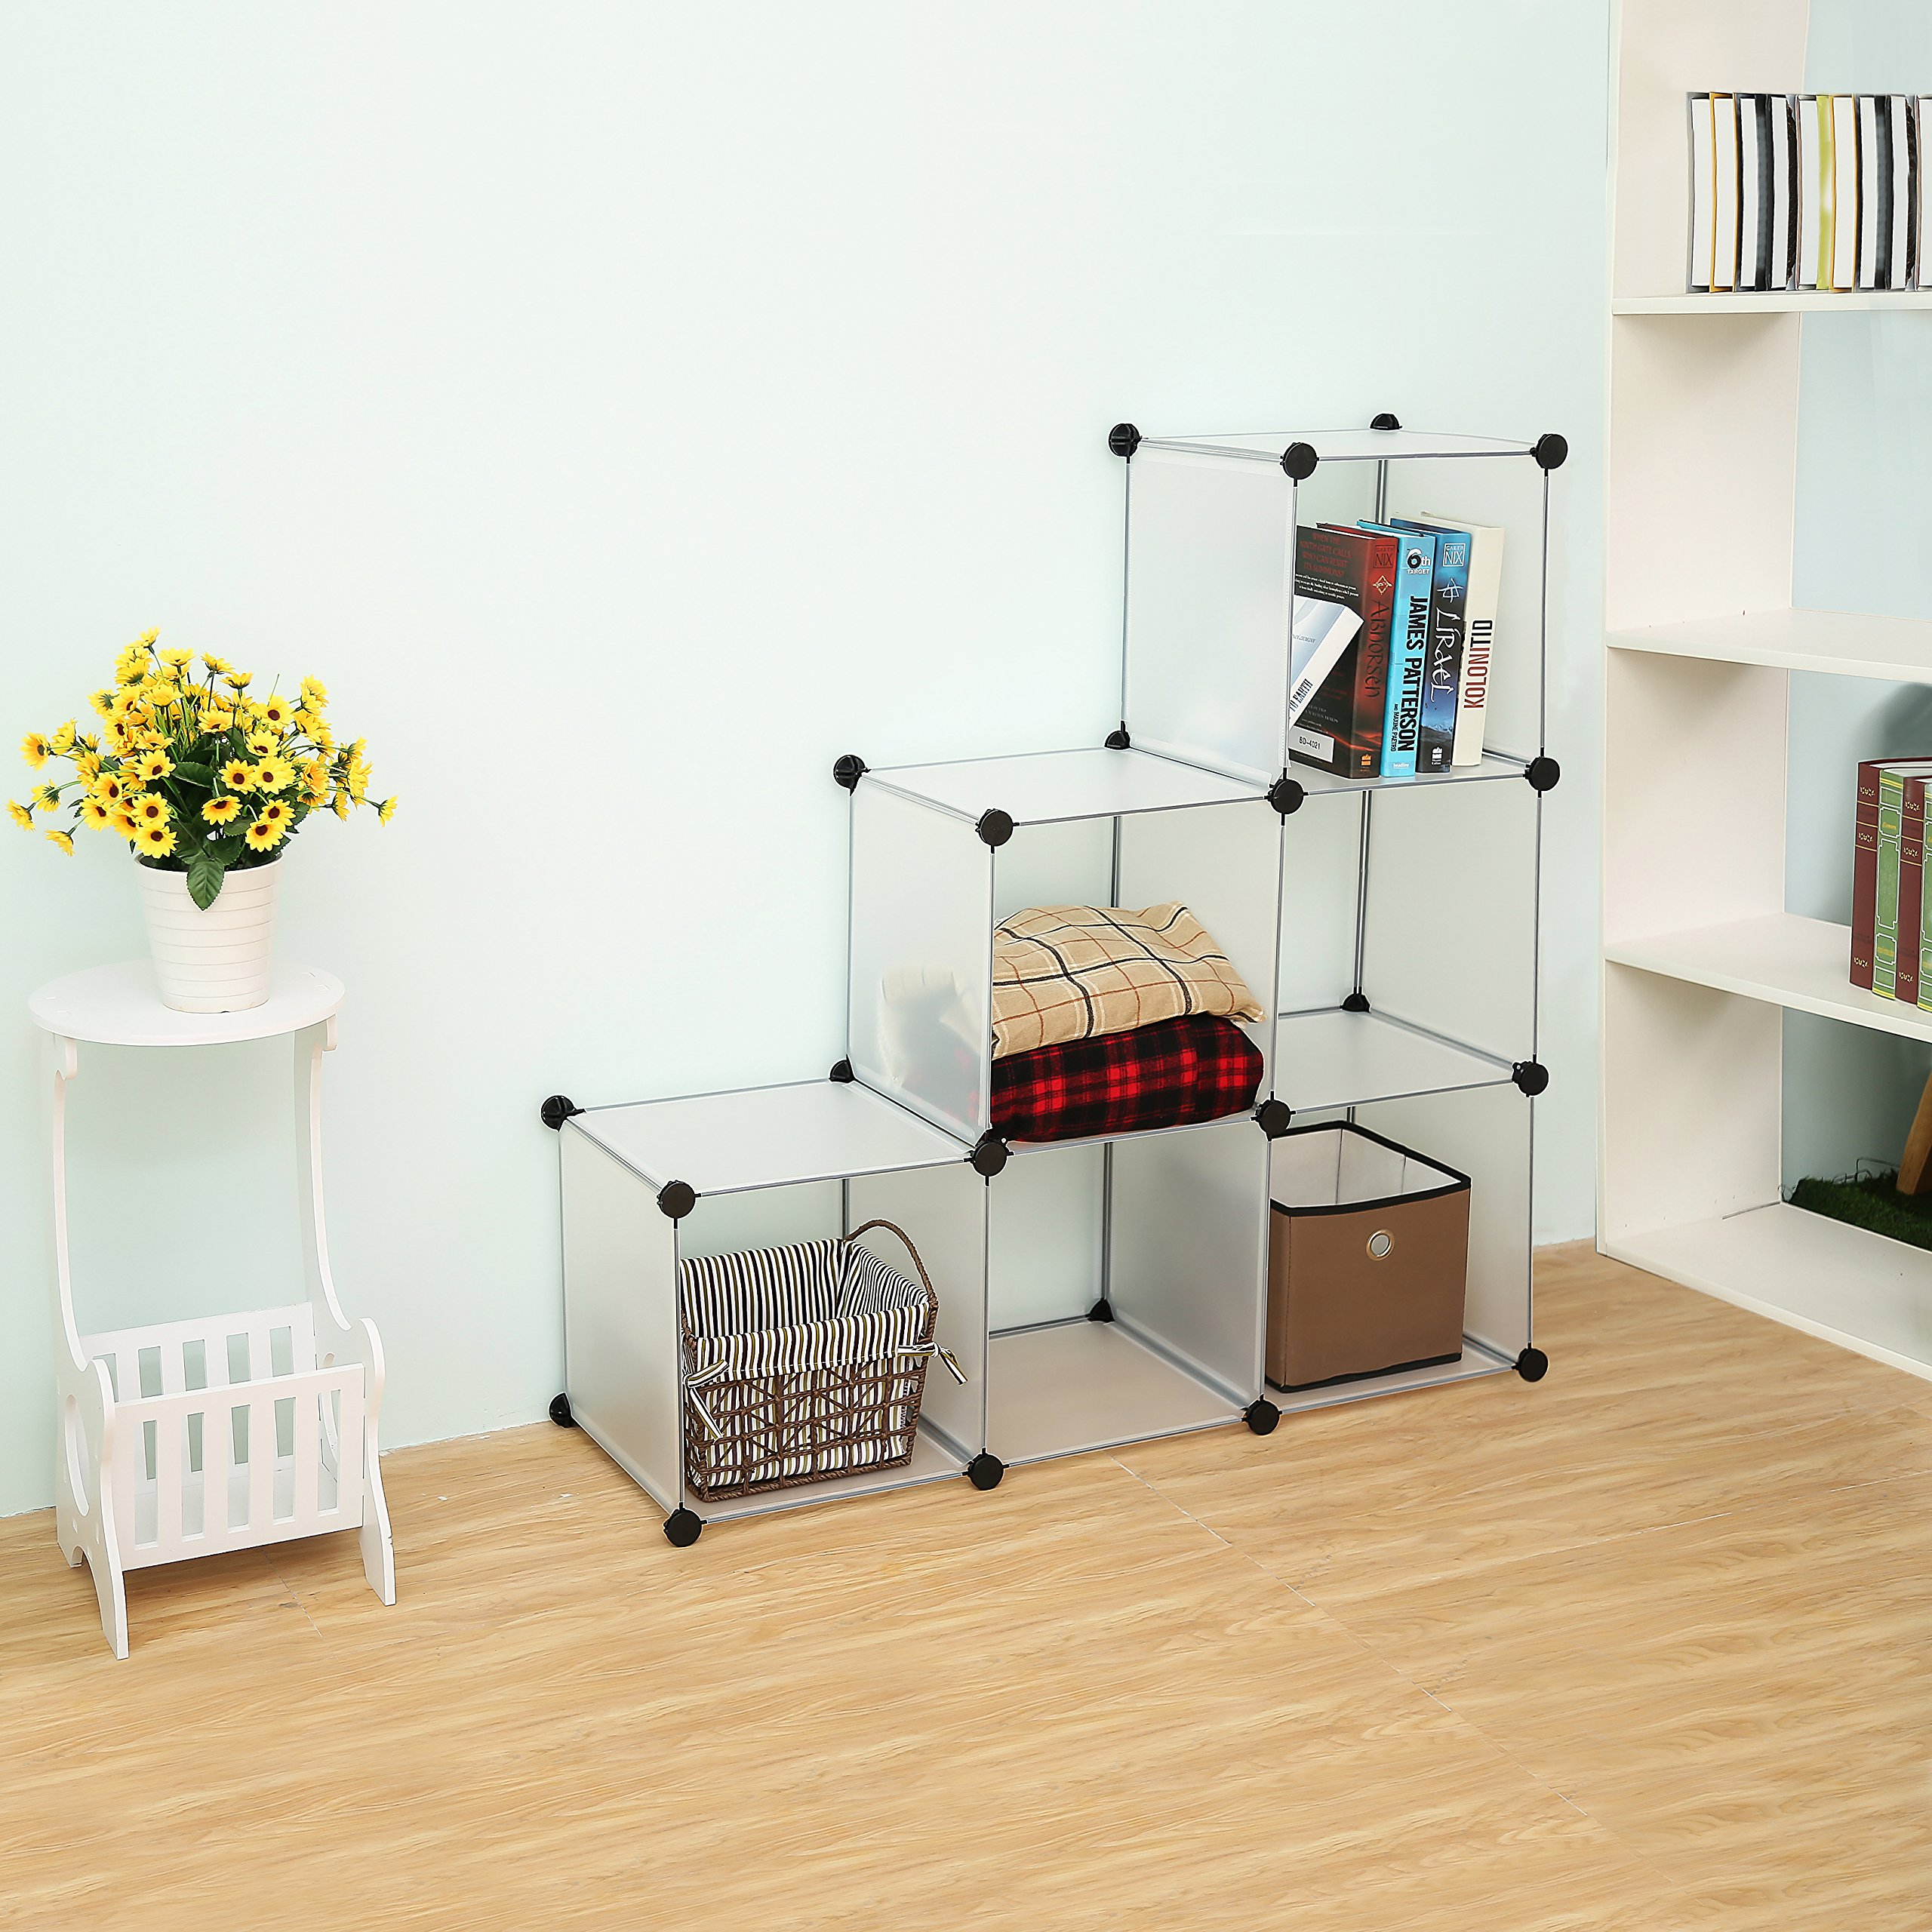 C&AHOME - DIY Bookcase Media Storage Standing Shelf Storage Cabinet Cube of 6, Semitransparent by C&AHOME (Image #4)